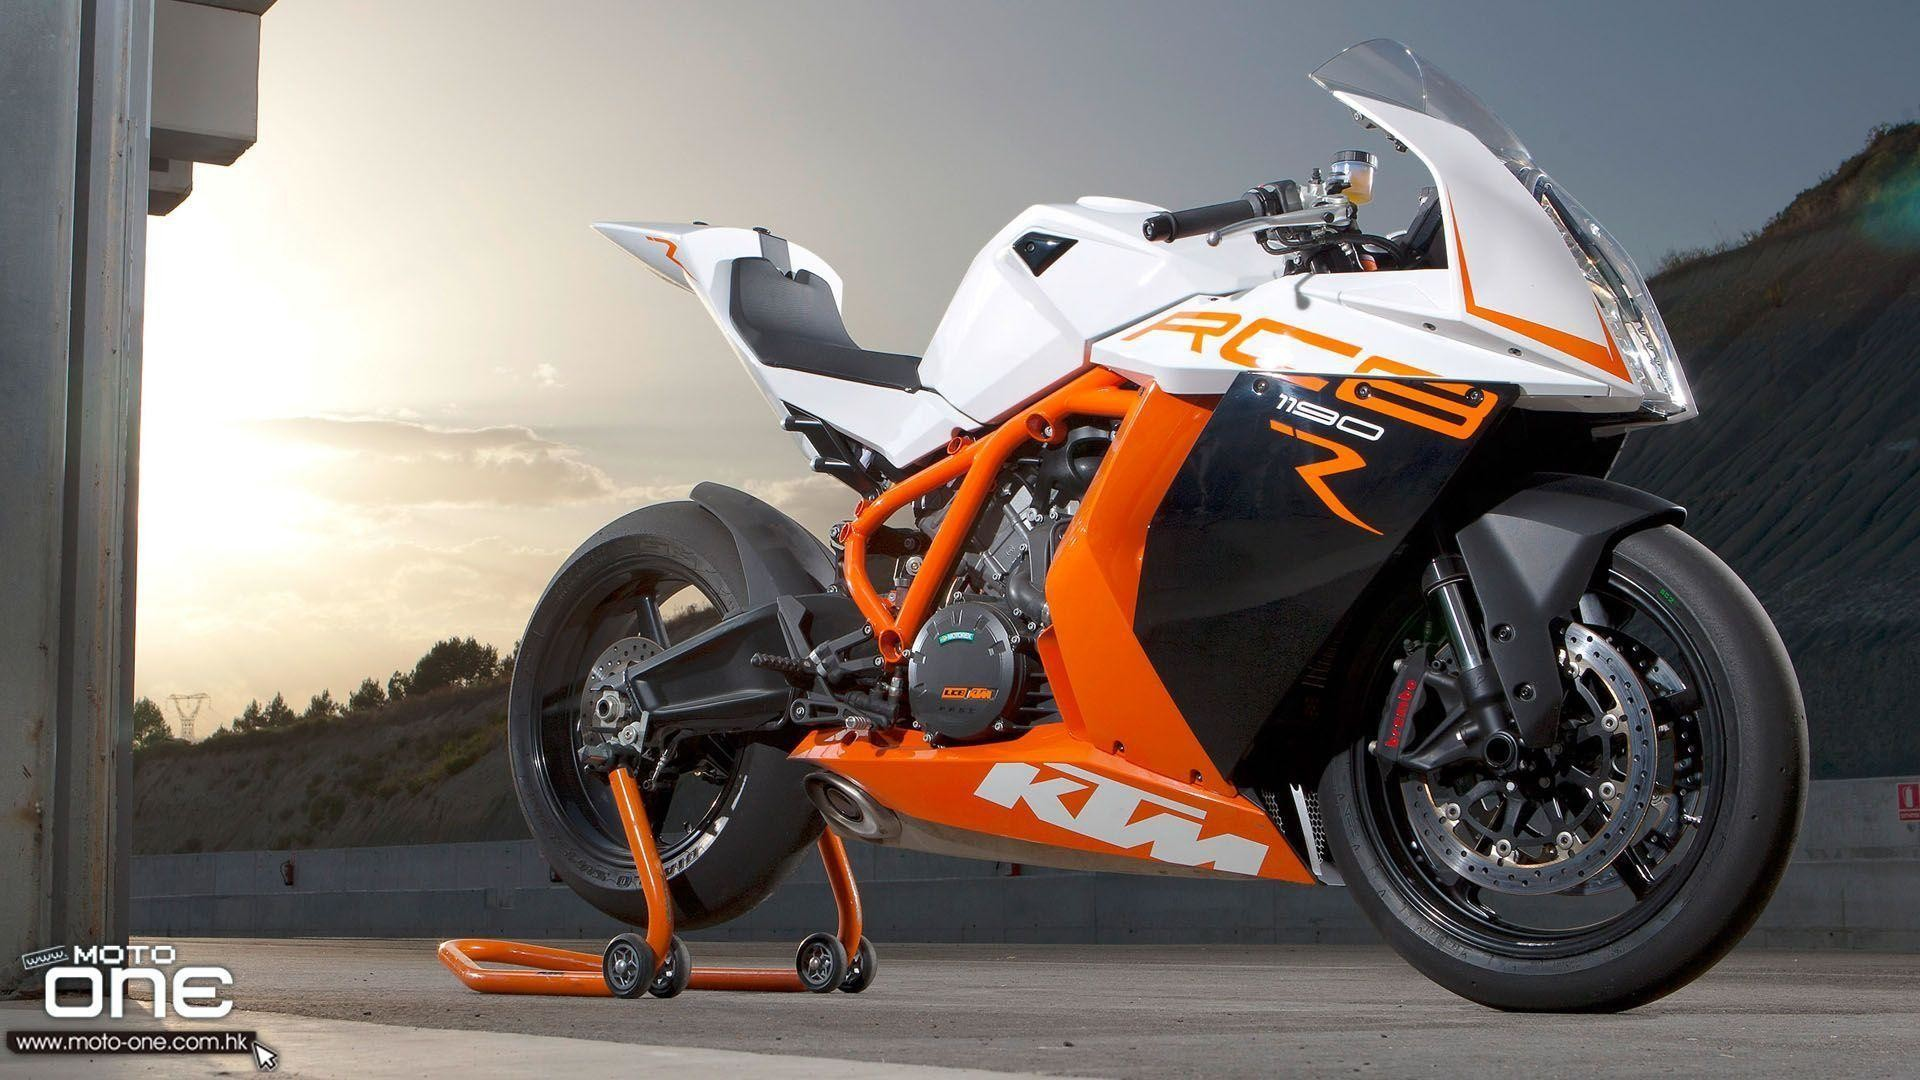 4k Wallpaper Full Hd Ktm Rc 390 Hd Wallpapers 1080p